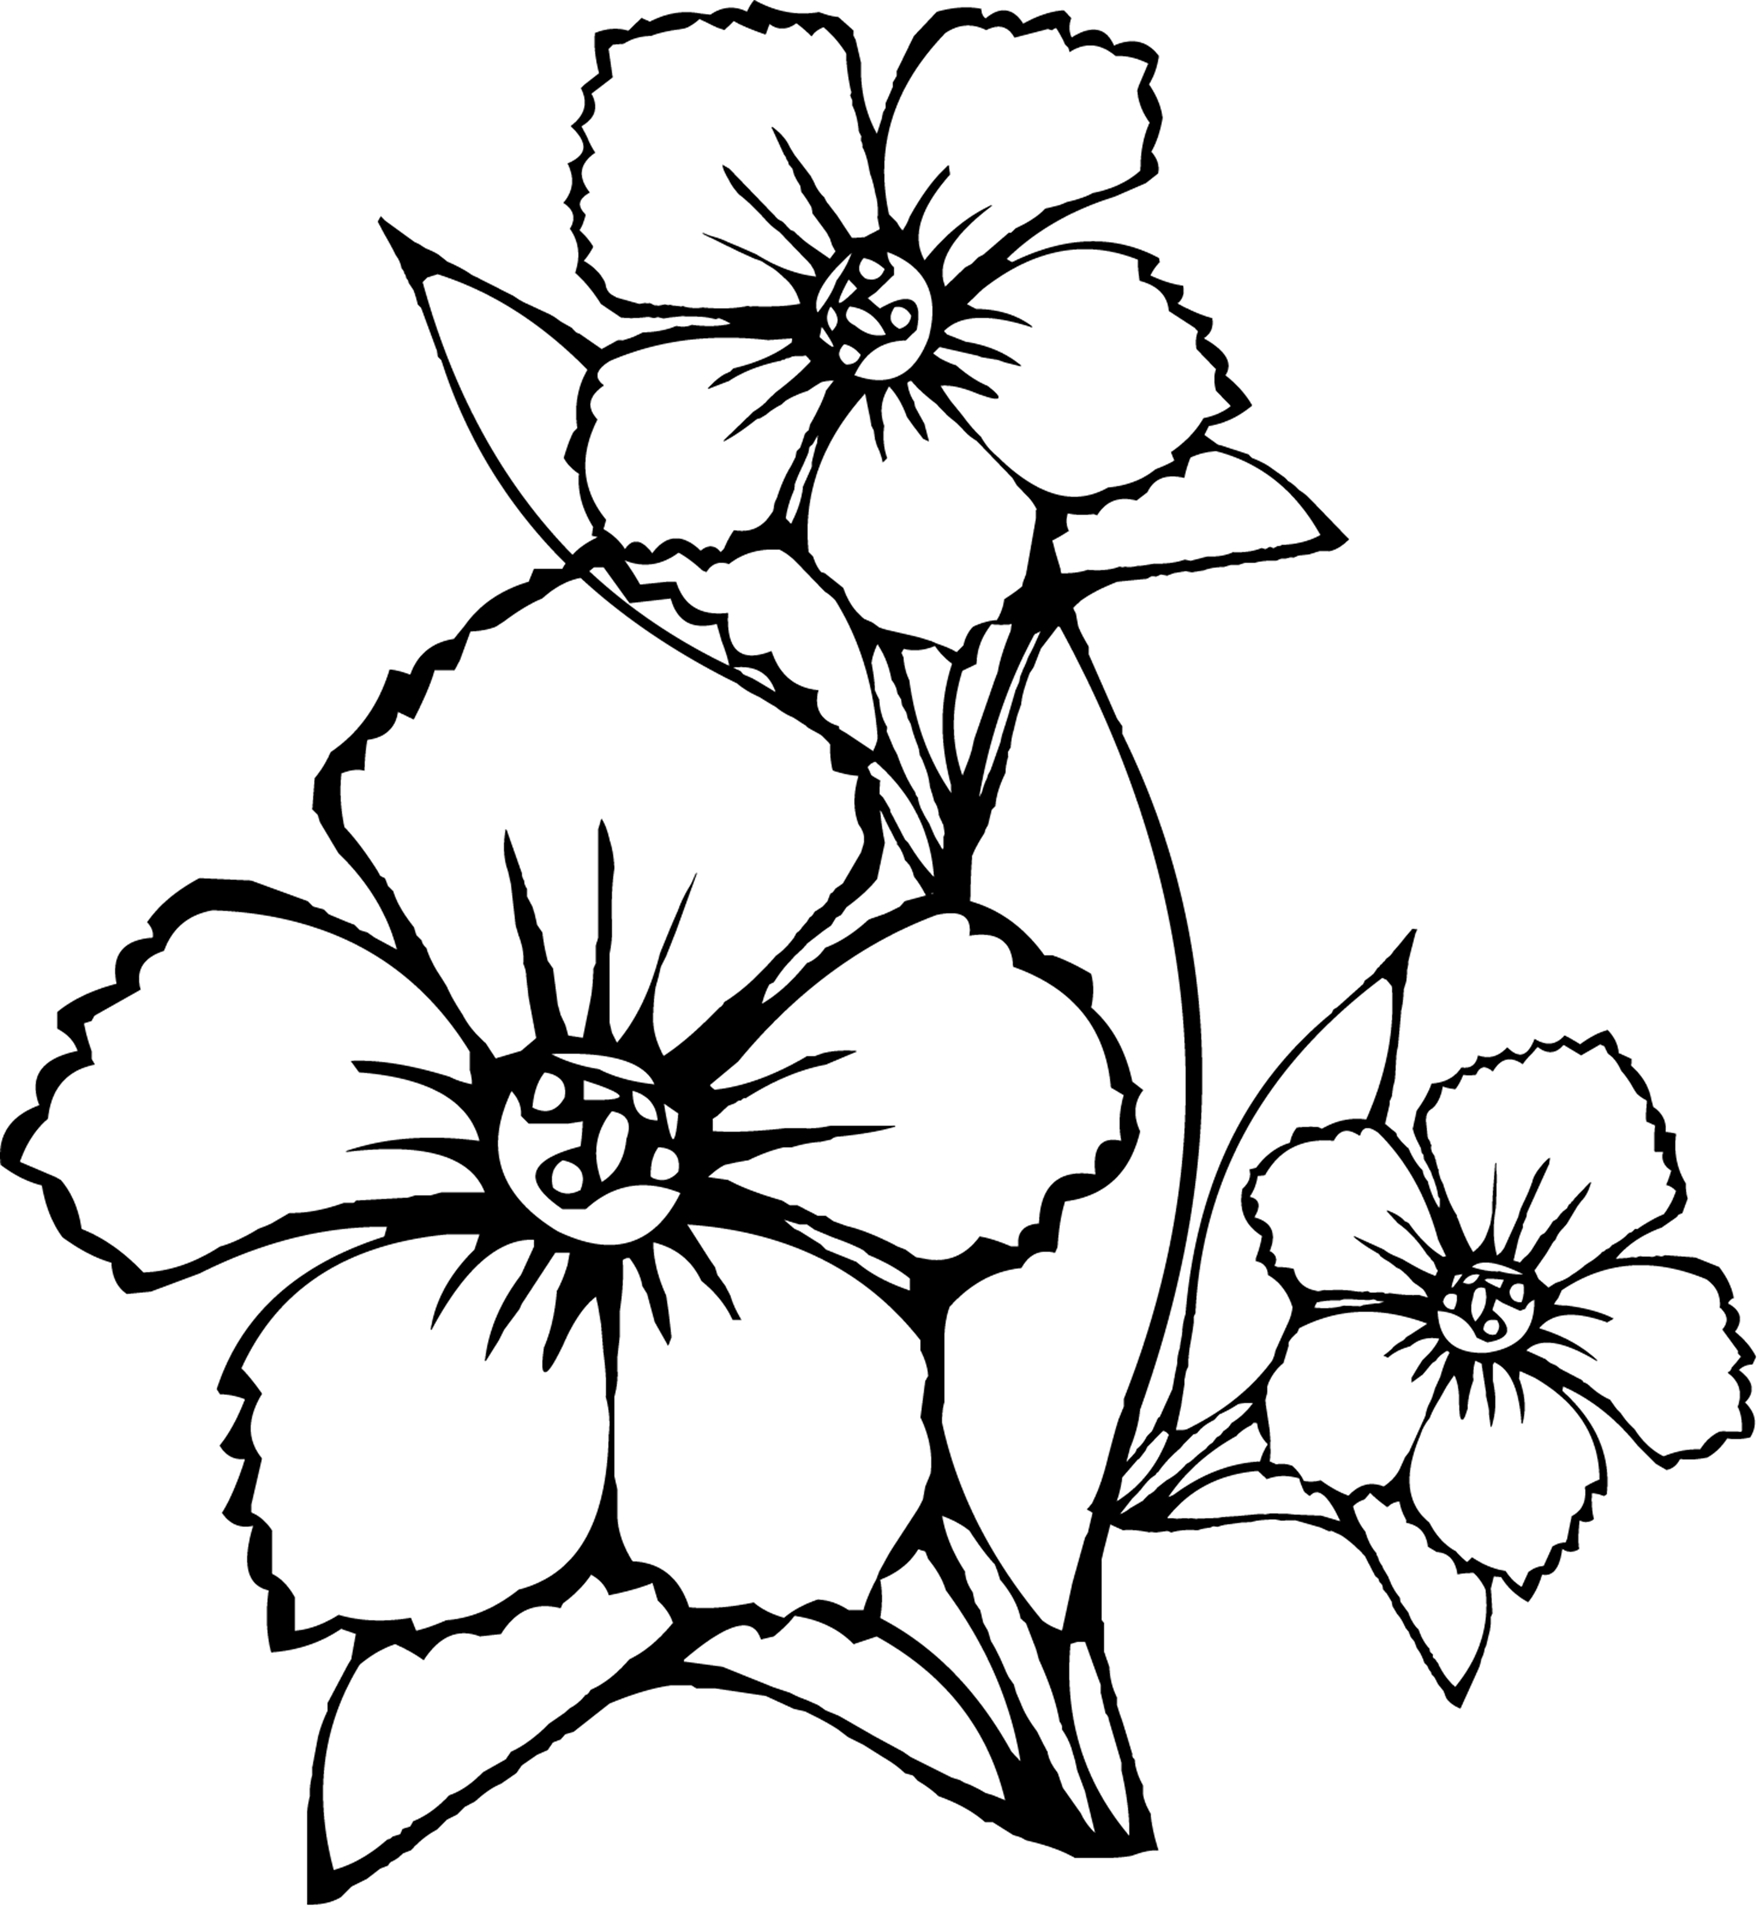 colouring page of flowers flower coloring pages choosboox of flowers page colouring